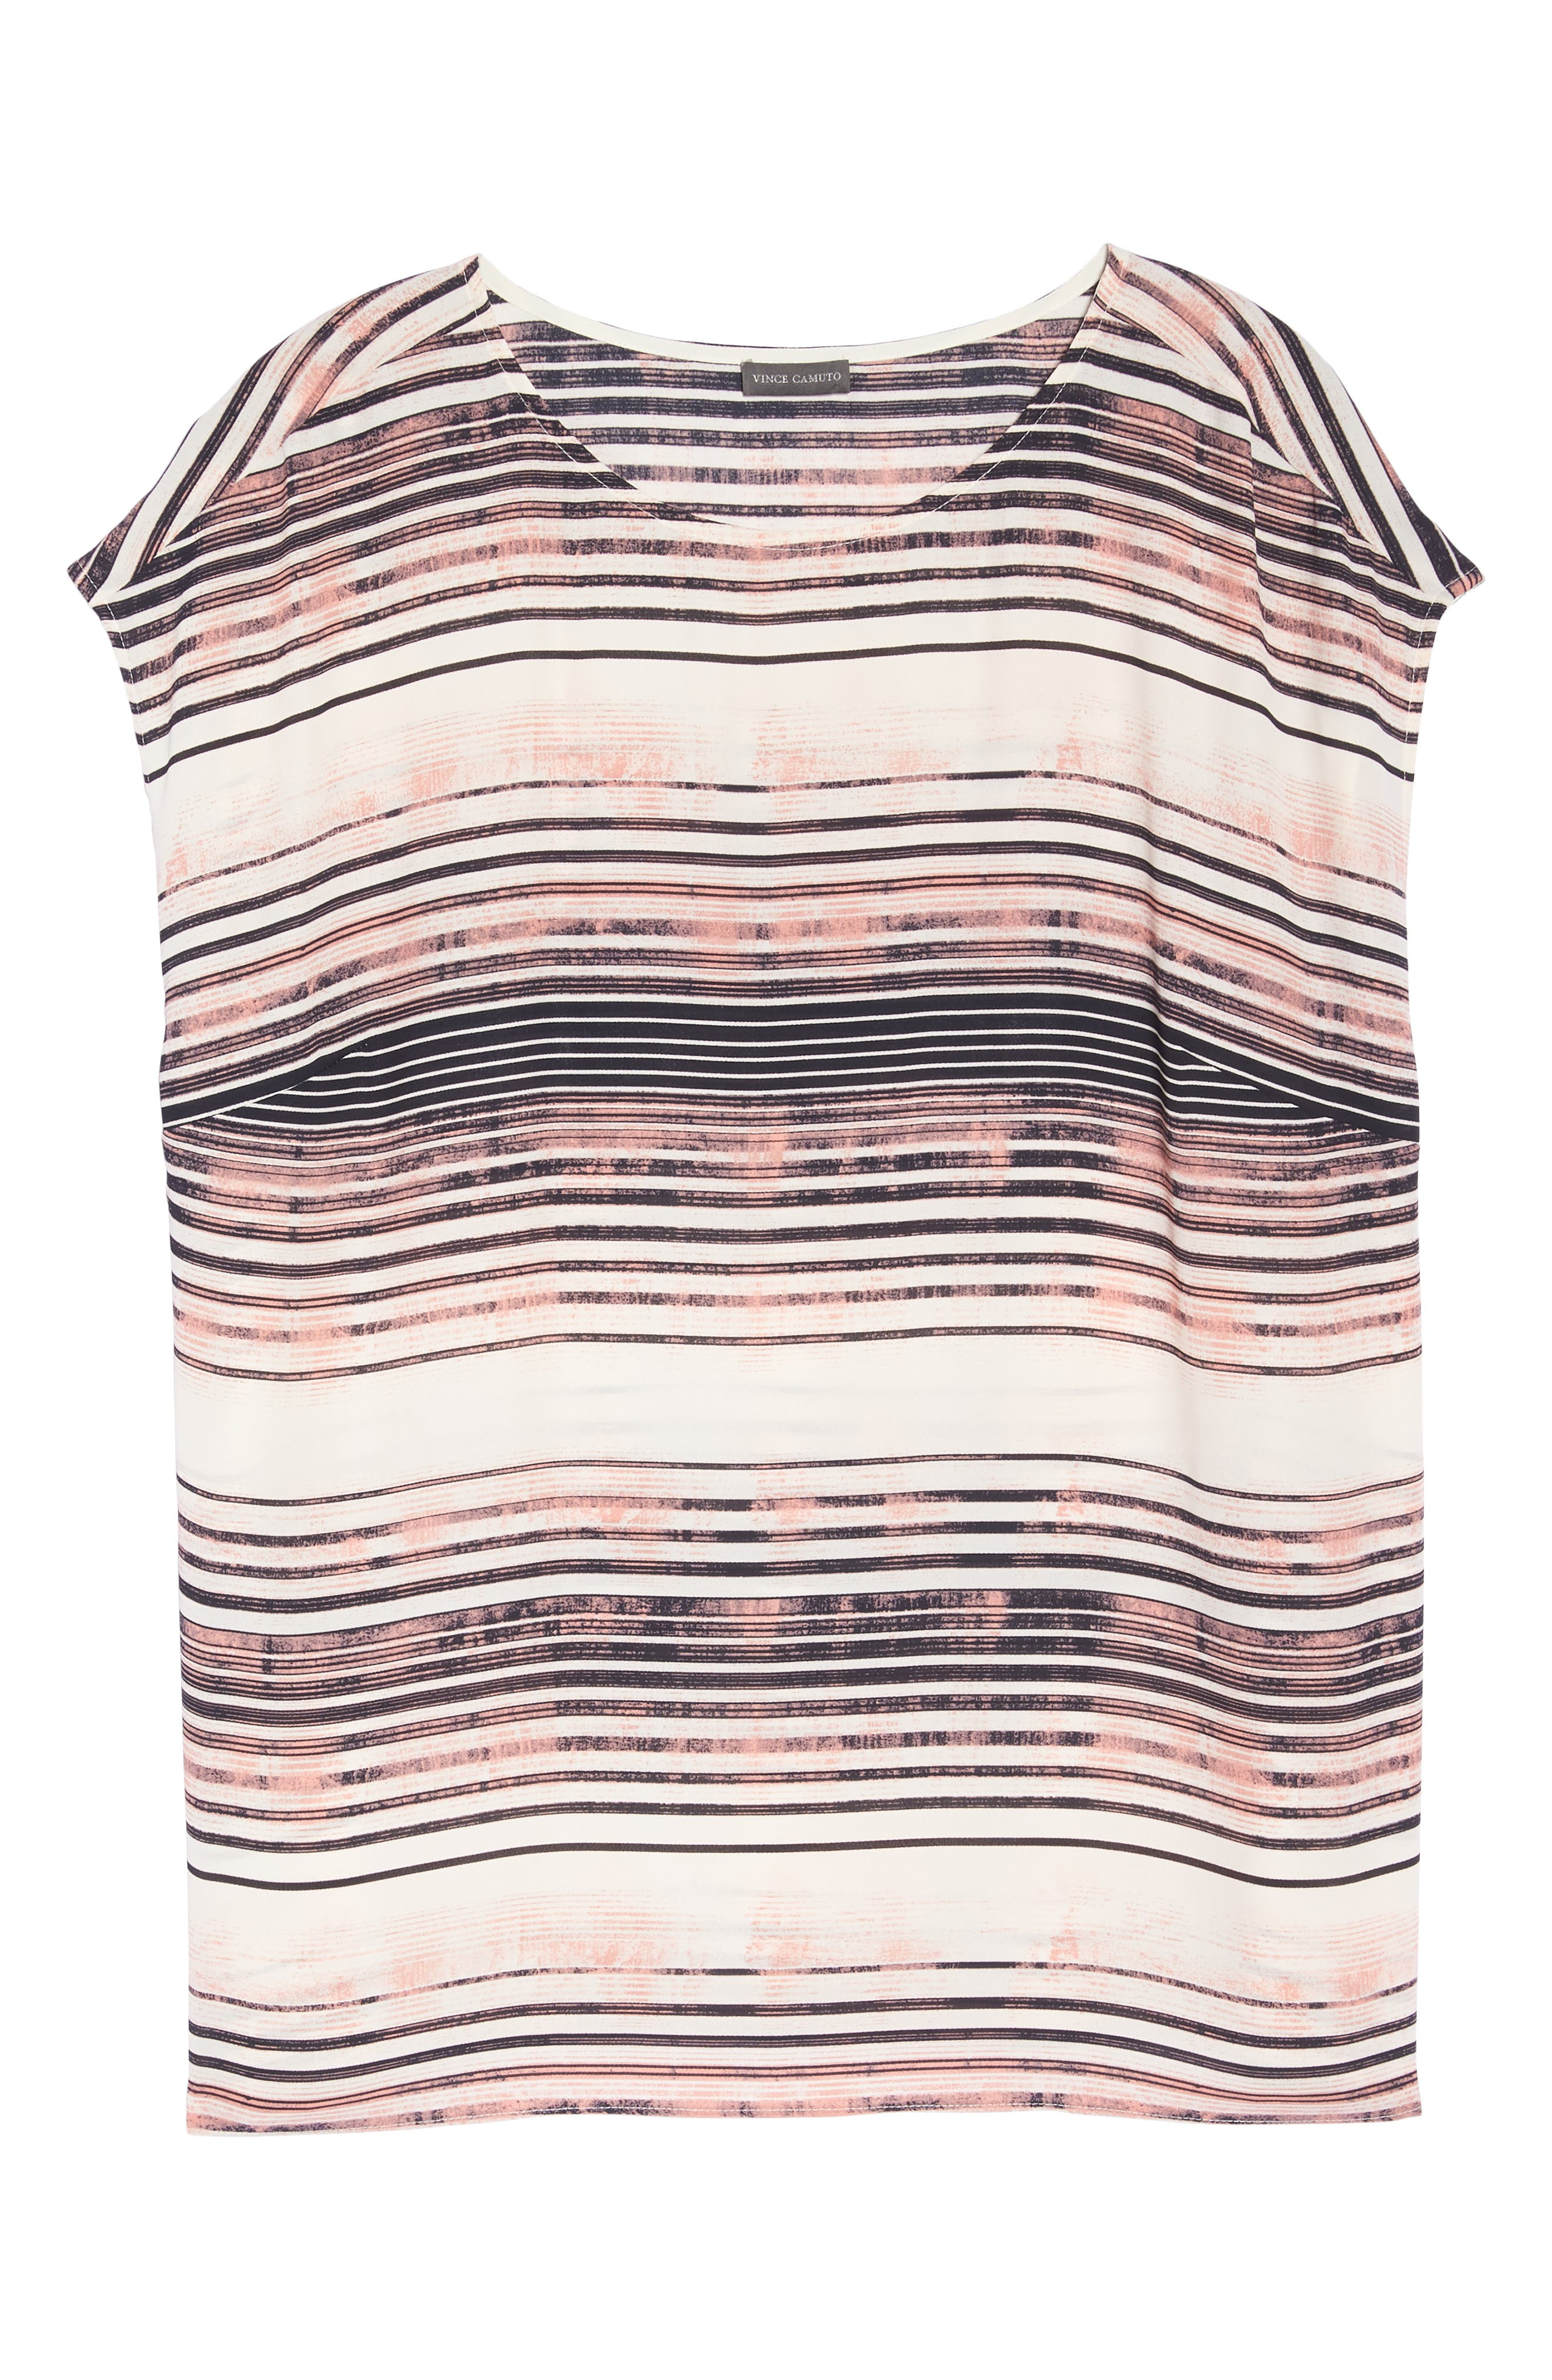 Ancient Muses Stripe Top,                             Alternate thumbnail 7, color,                             Rich Cream